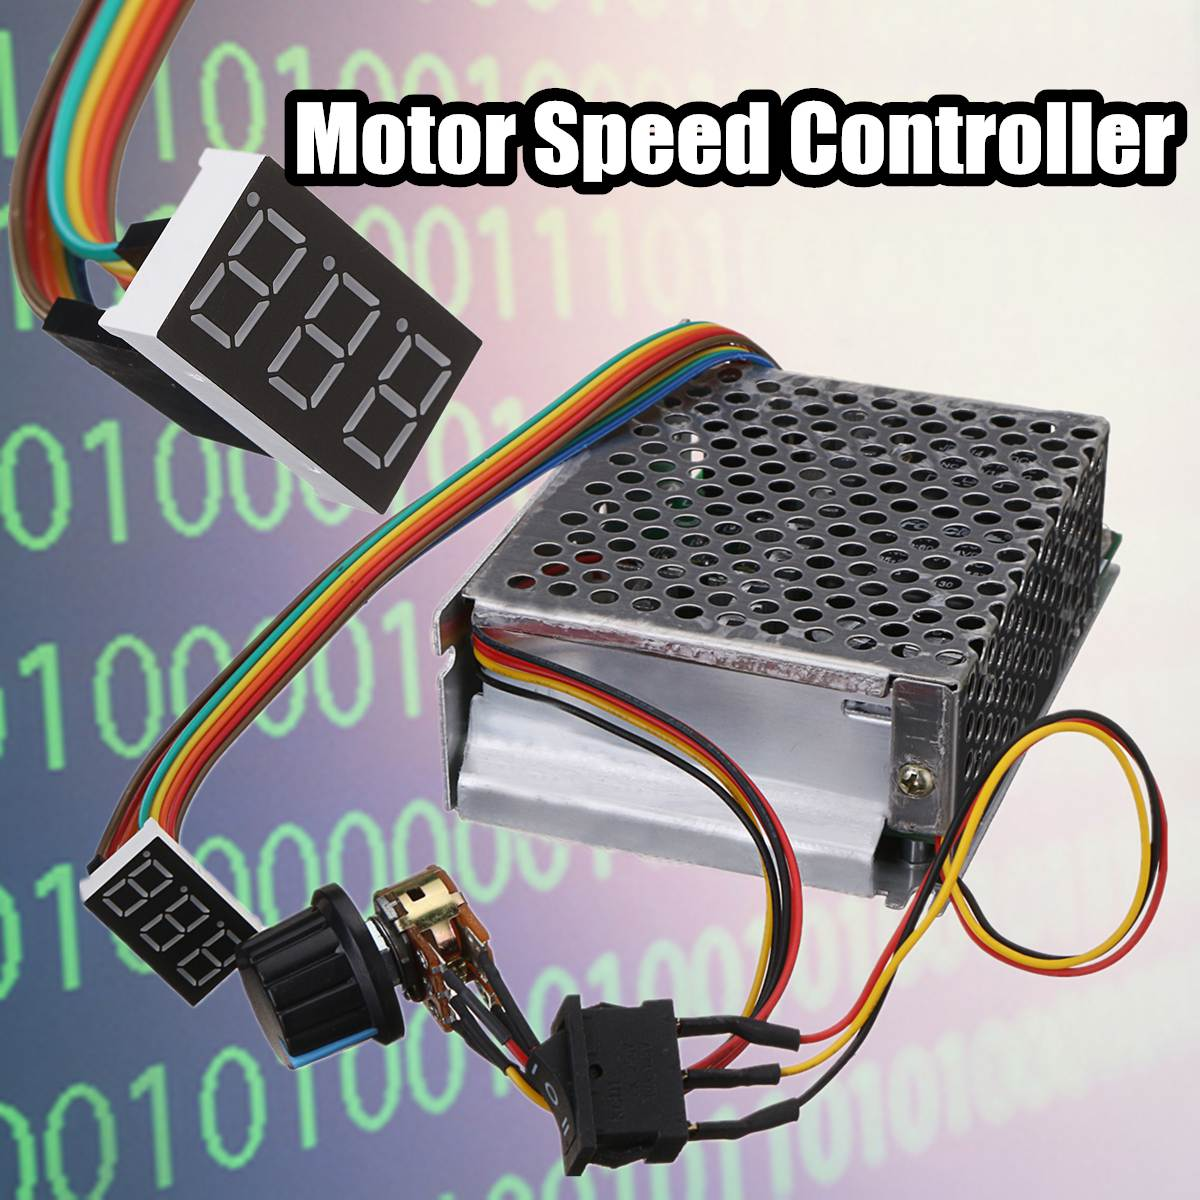 1Pcs DC10-50V 60A 3000W Reversible DC Motor Speed Controller PWM Control 12V 24V 36V 48V Reversible Switch Digital Display motor speed controller regulator programable reversible pwm motor speed controller dc10 50v 100a 3000w